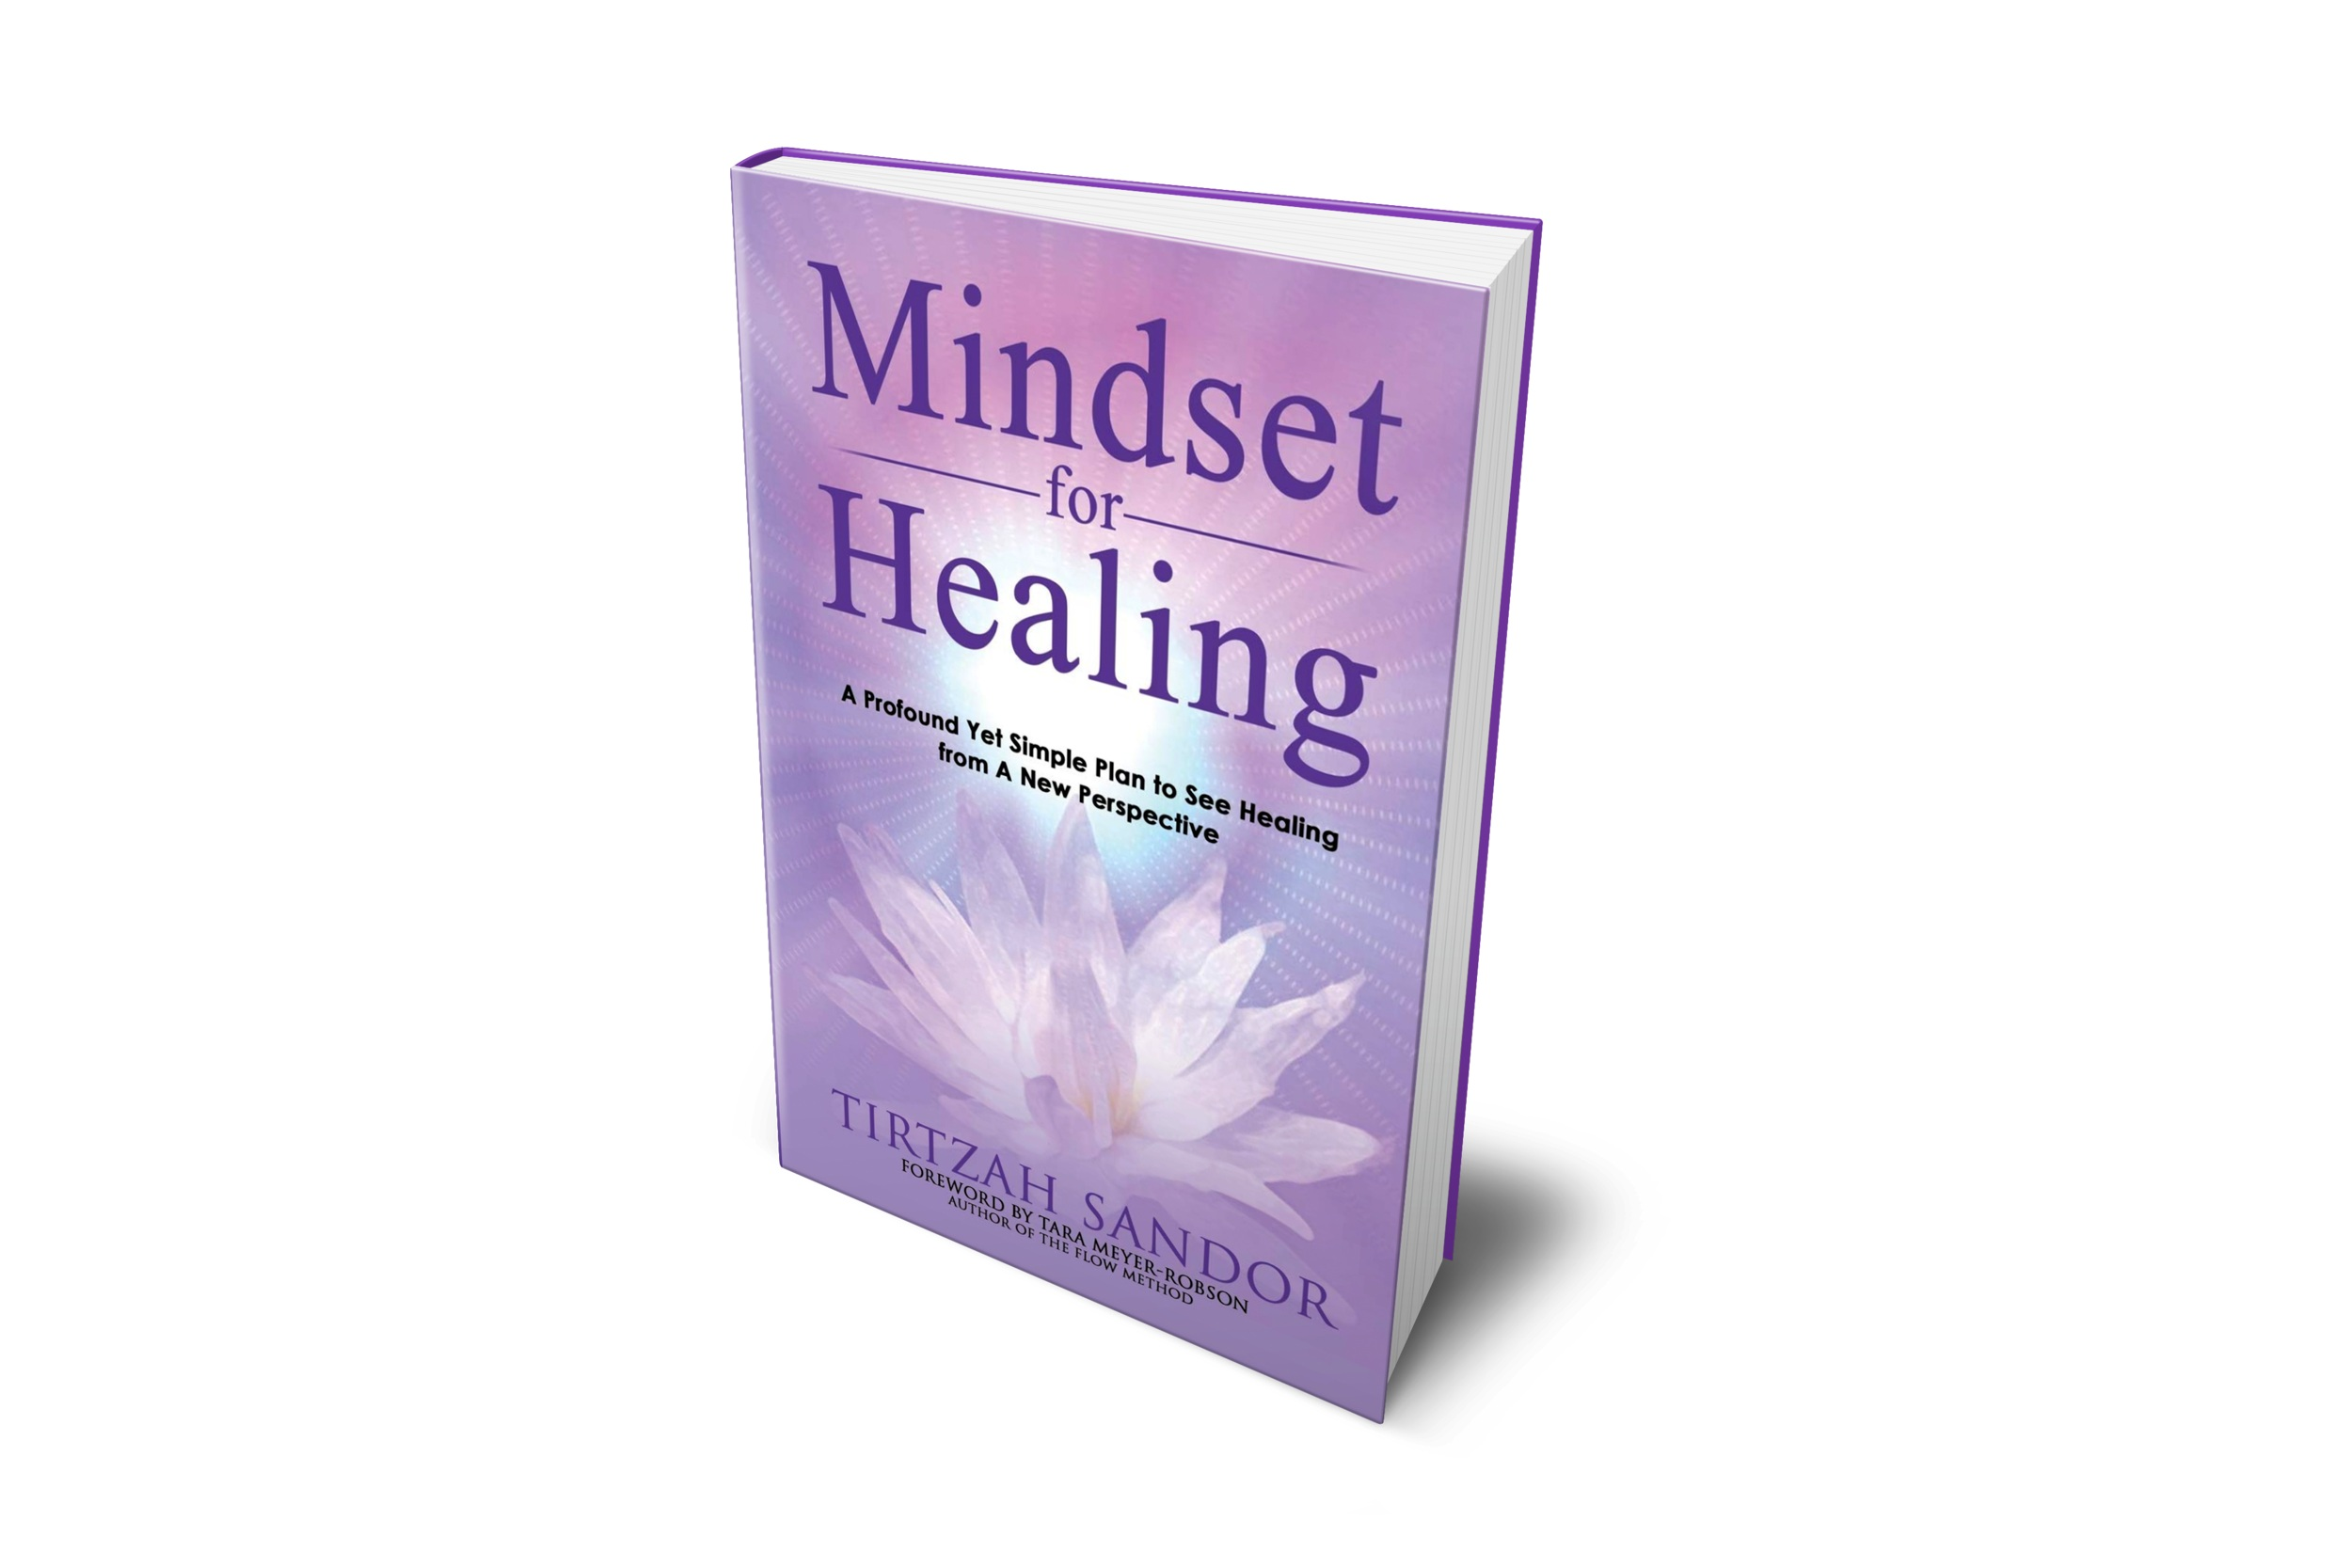 Mindset for Healing - A Profound Yet Simple Plan to See Healing from A New PerspectiveAre you ready to move forward in your healing journey for body, mind and spirit? This book is a 10 step process that will do just that for you. The book is set up as an easy read so you can read it while in the middle of any healing journey. It will walk you step by step from confusion to focus by giving you options to create the right path for you. Mindset for Healing is the guide I wish I would have had when going through various healing journeys. I couldn't find it on the market, so I wrote it.Find out more: by Clicking on the book to order a paperback copy or e-book through Amazon, or contact me to purchase a paperback copy.